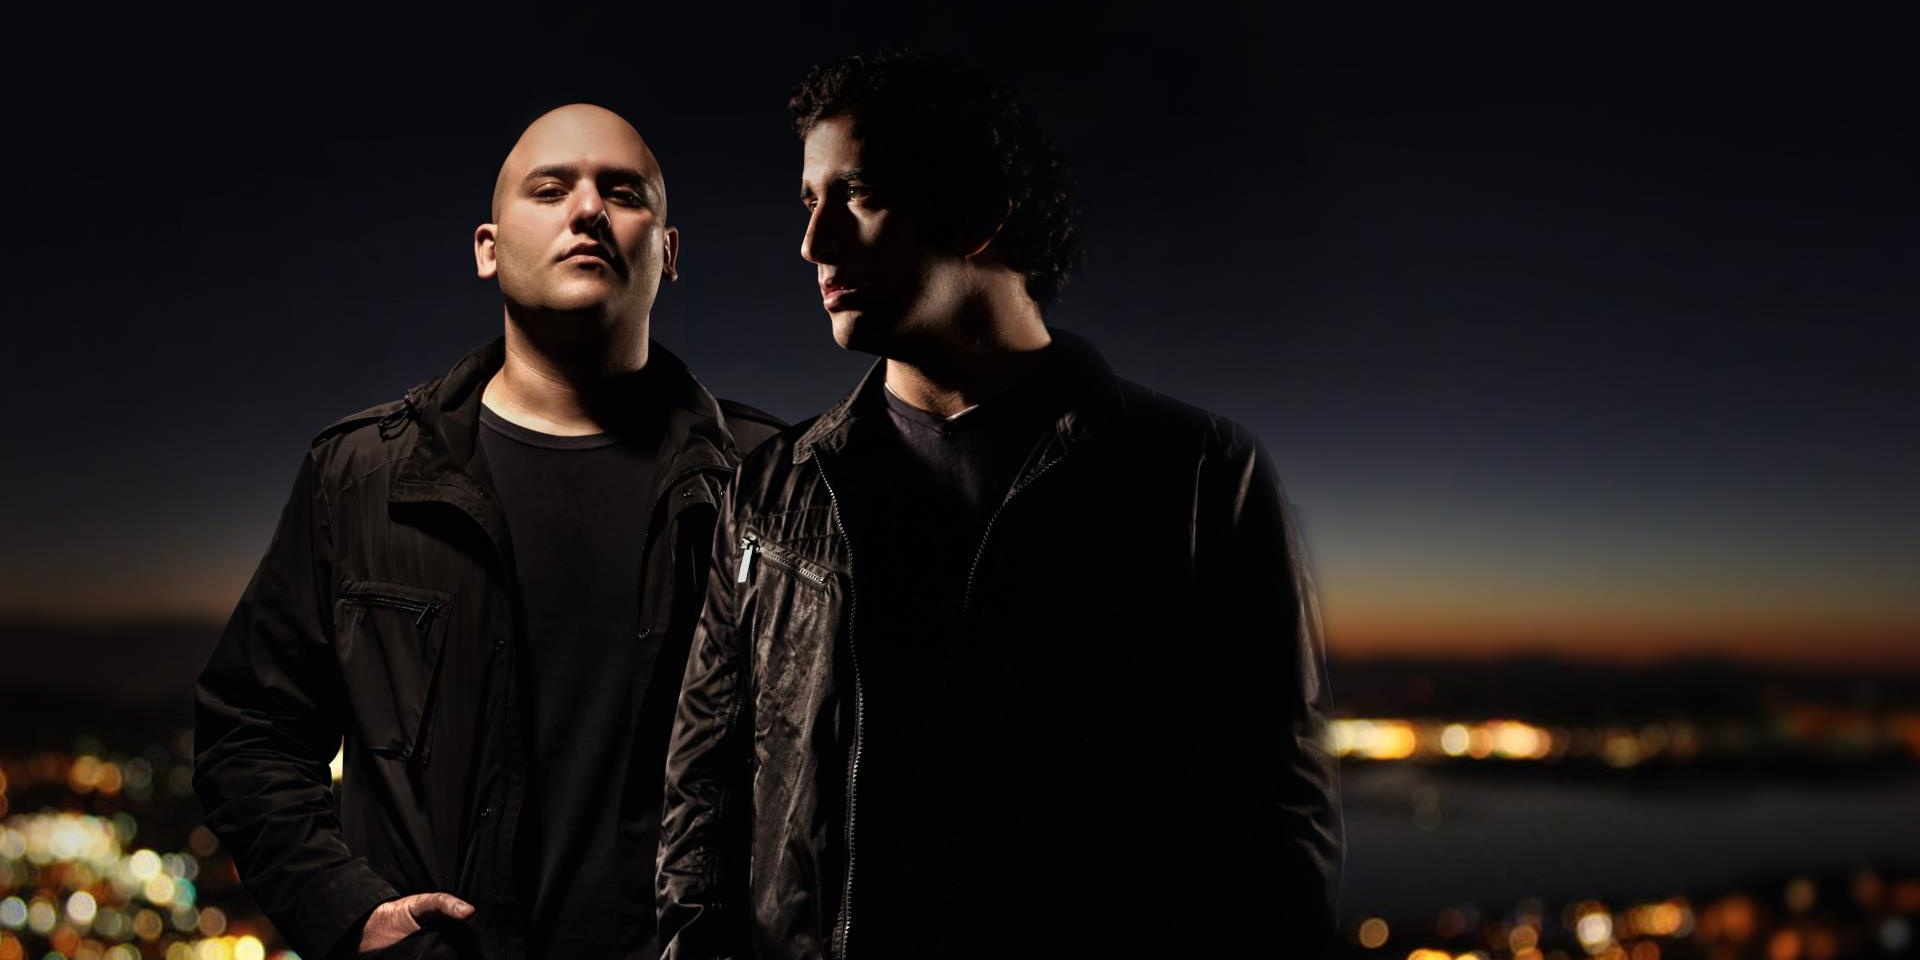 Aly & Fila to perform at La Playa by FOC Sentosa in Singapore this October